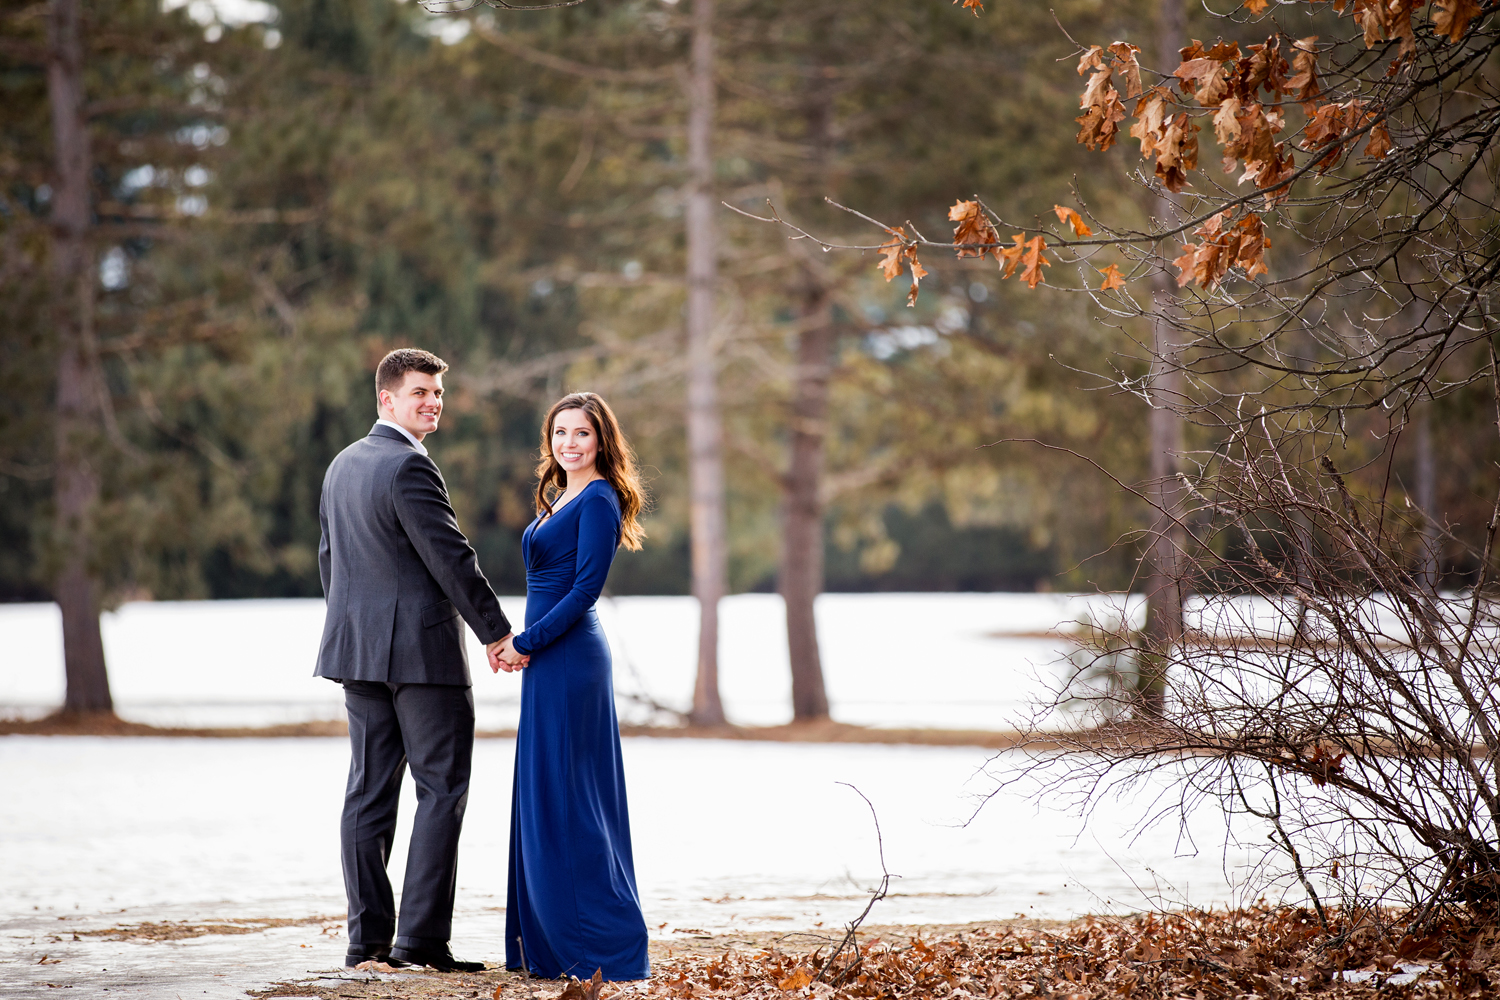 winter engagement photography saratoga ny33.jpg